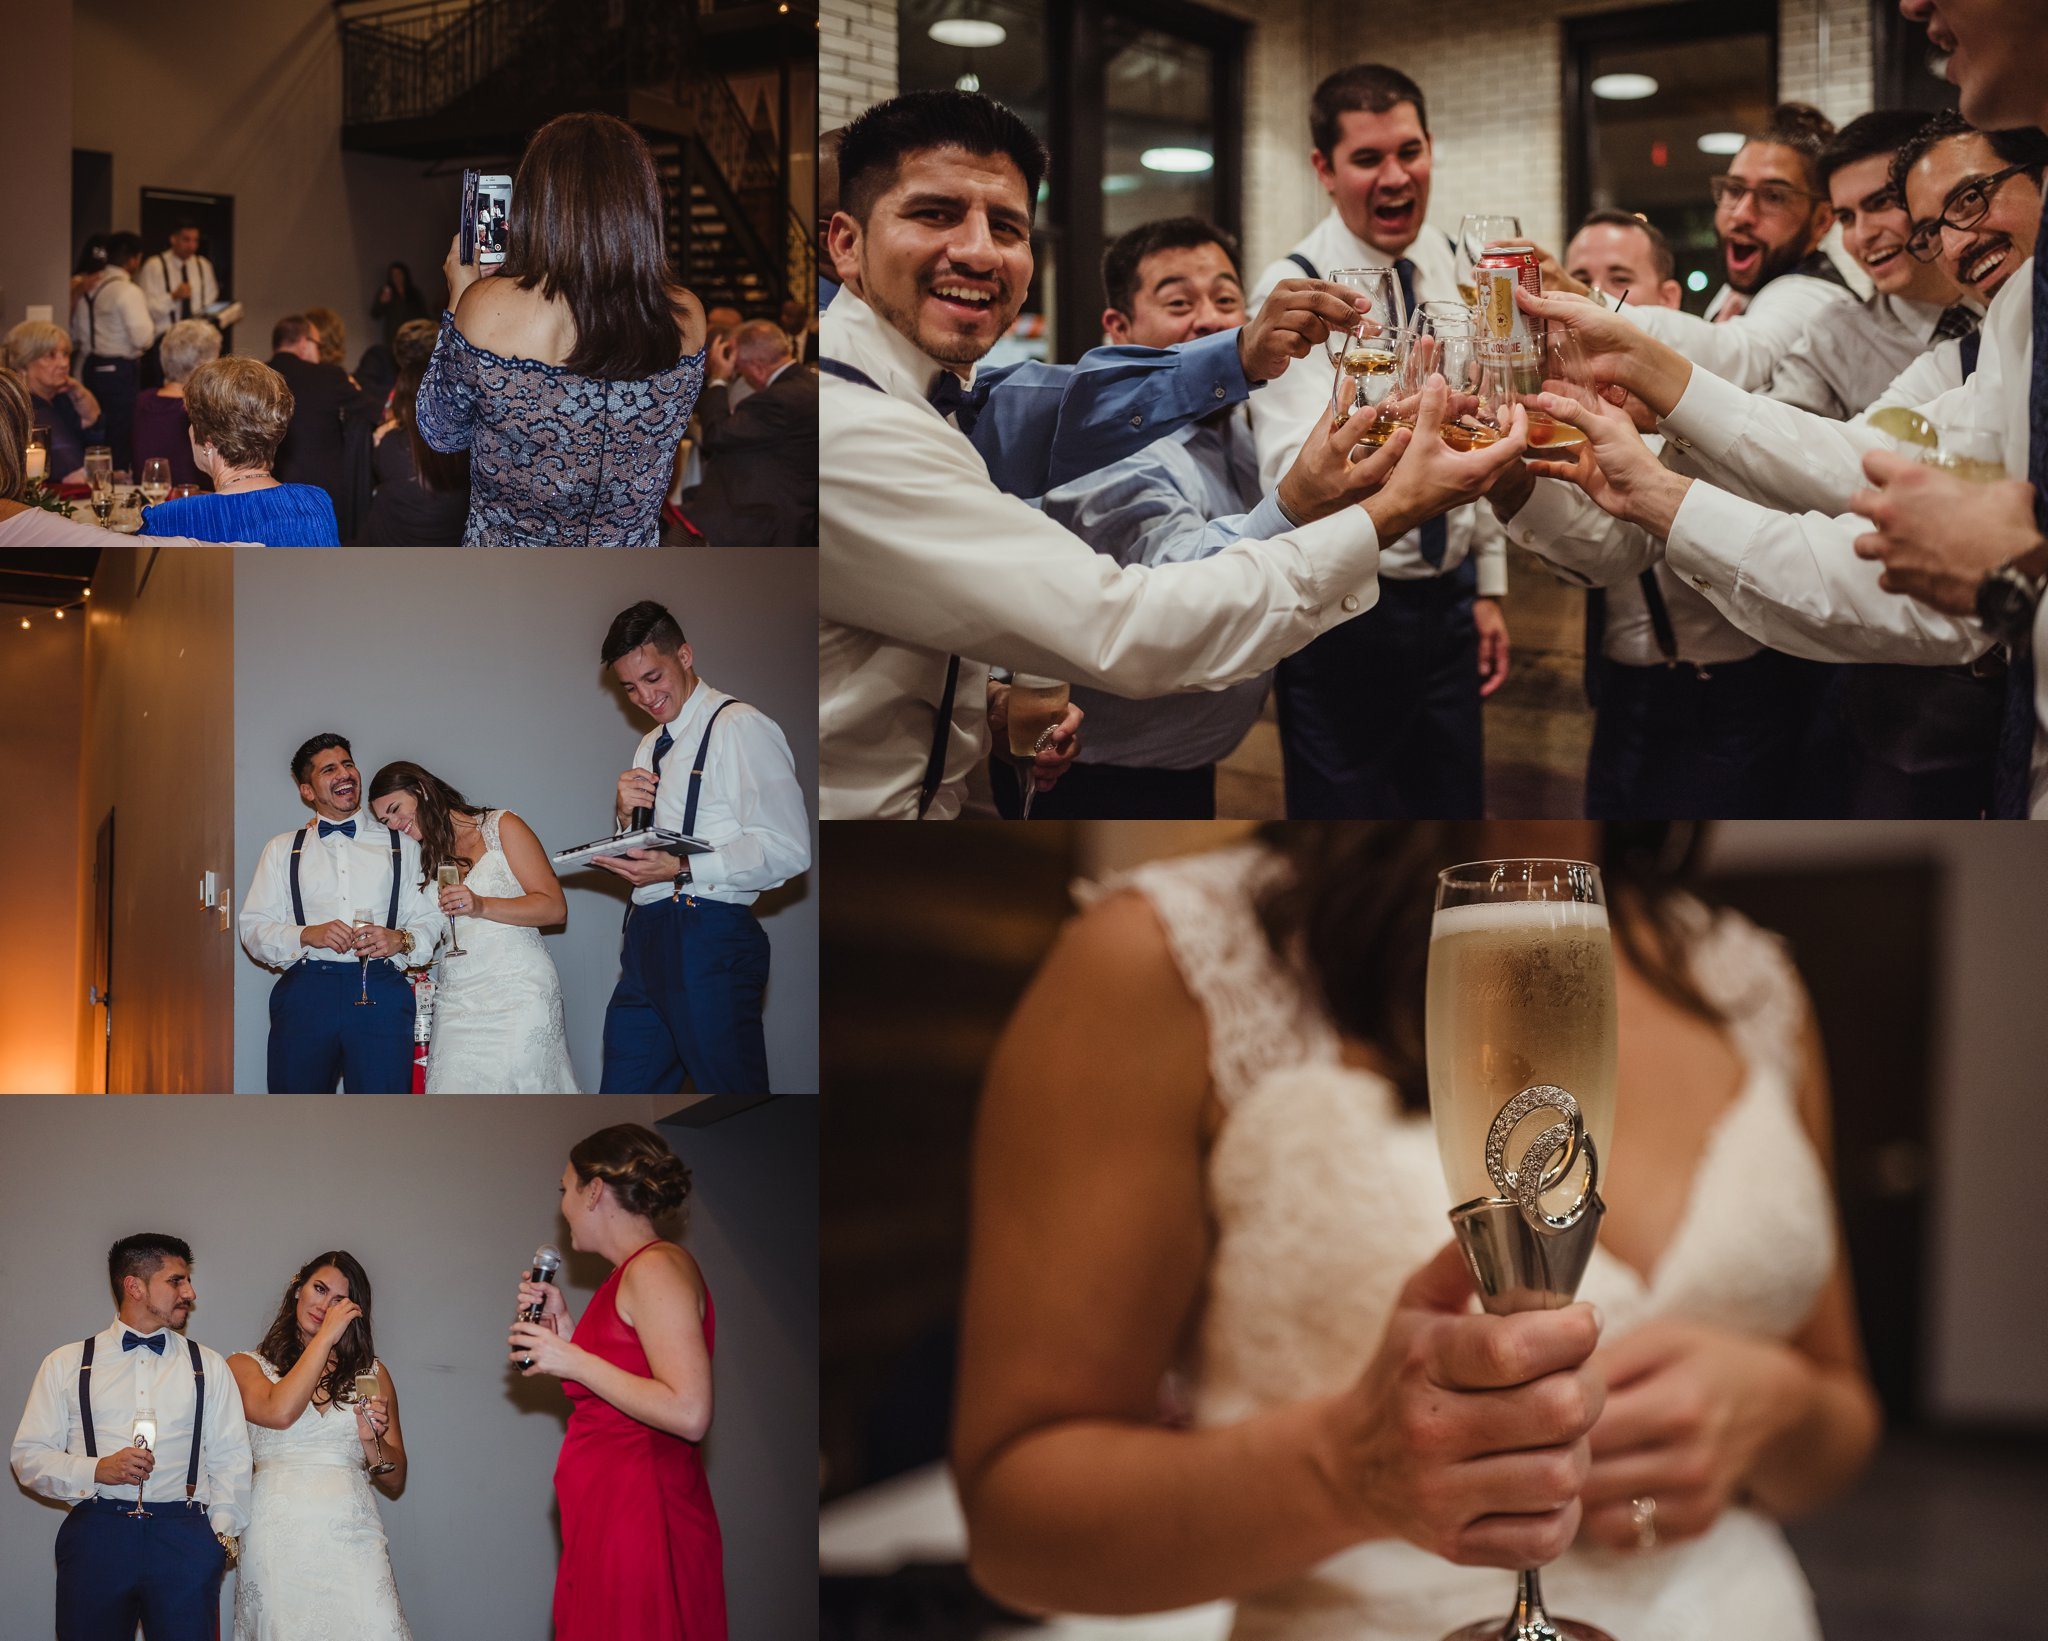 The bride and groom, along with their guests, enjoyed toasts by the maid of honor and best man at their wedding reception at Market Hall in downtown Raleigh, photos by Rose Trail Images.